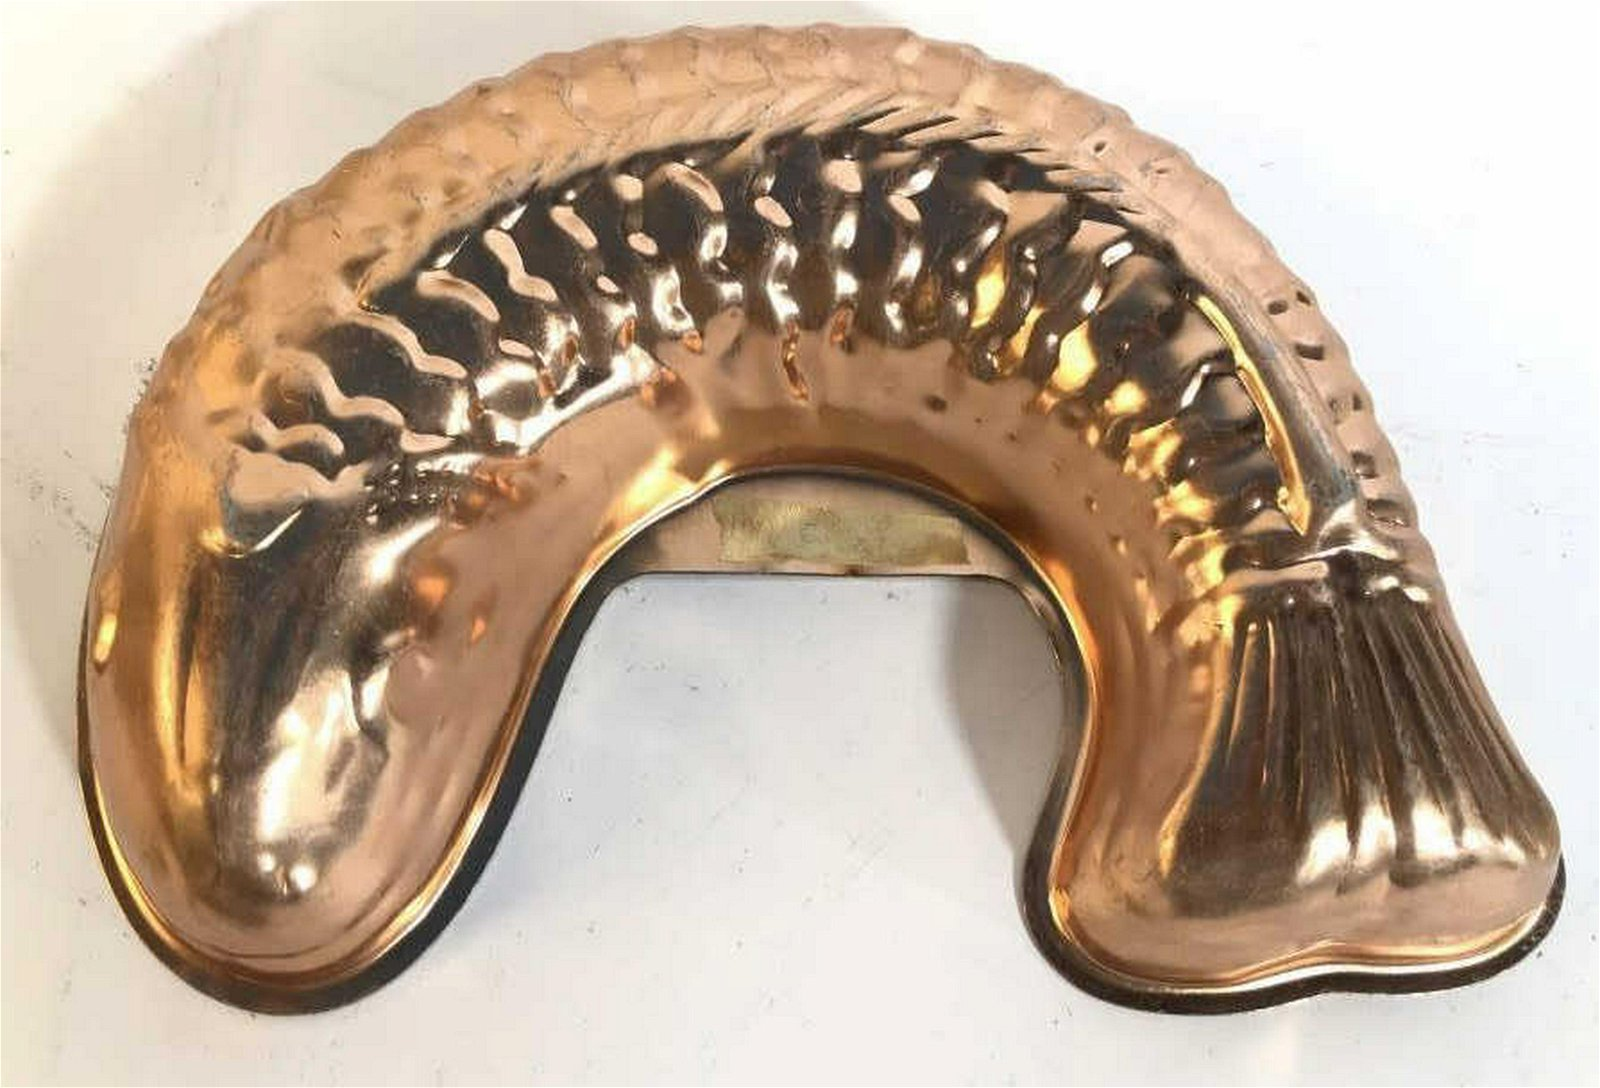 Vintage Copper Fish Mold Form Cooking or baking mold